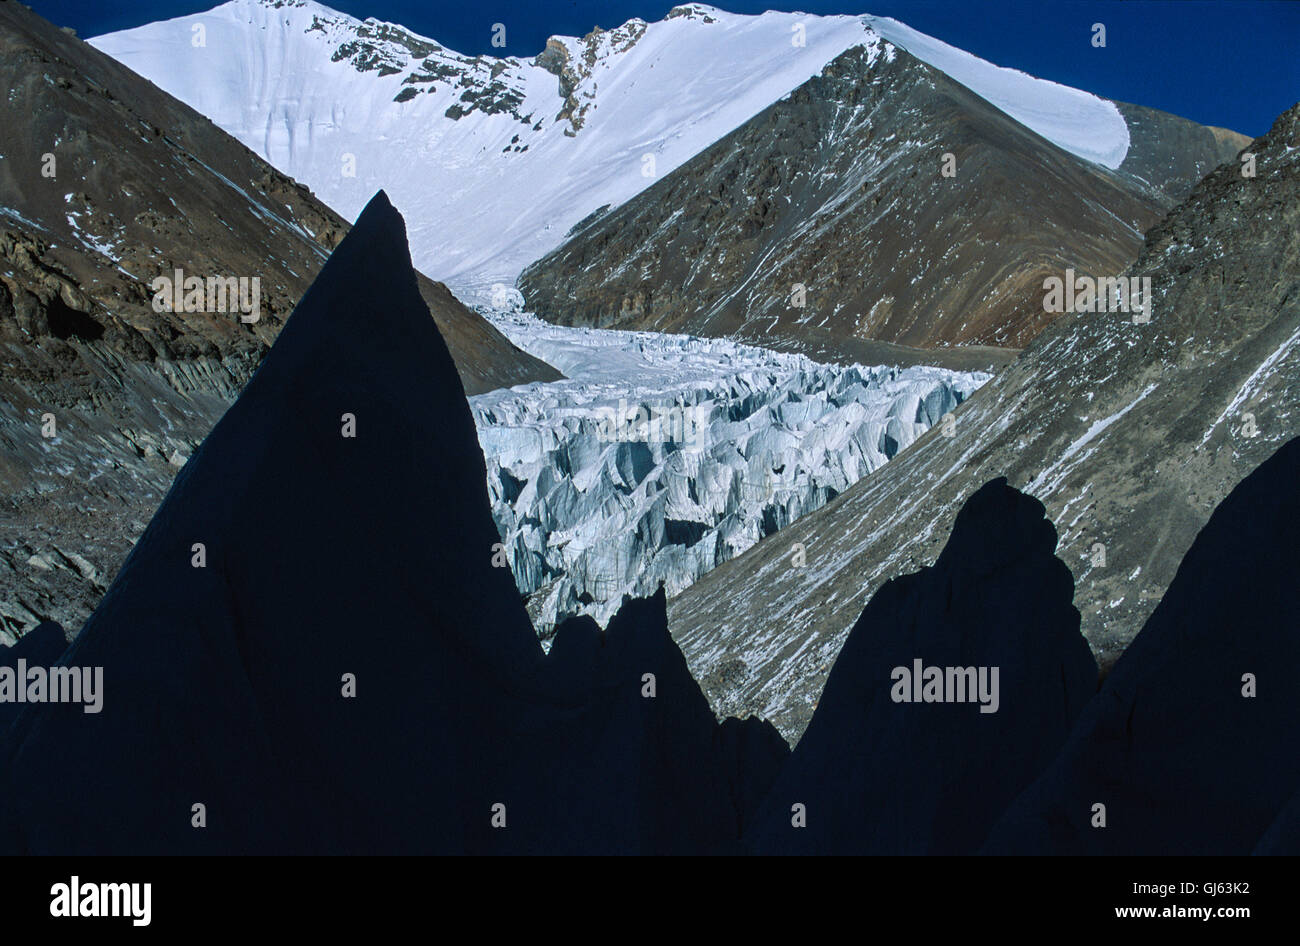 On East Rongbuk Glacier the famous George Mallory's Magic Highway' with silhouette of ice pinnacles between - Stock Image